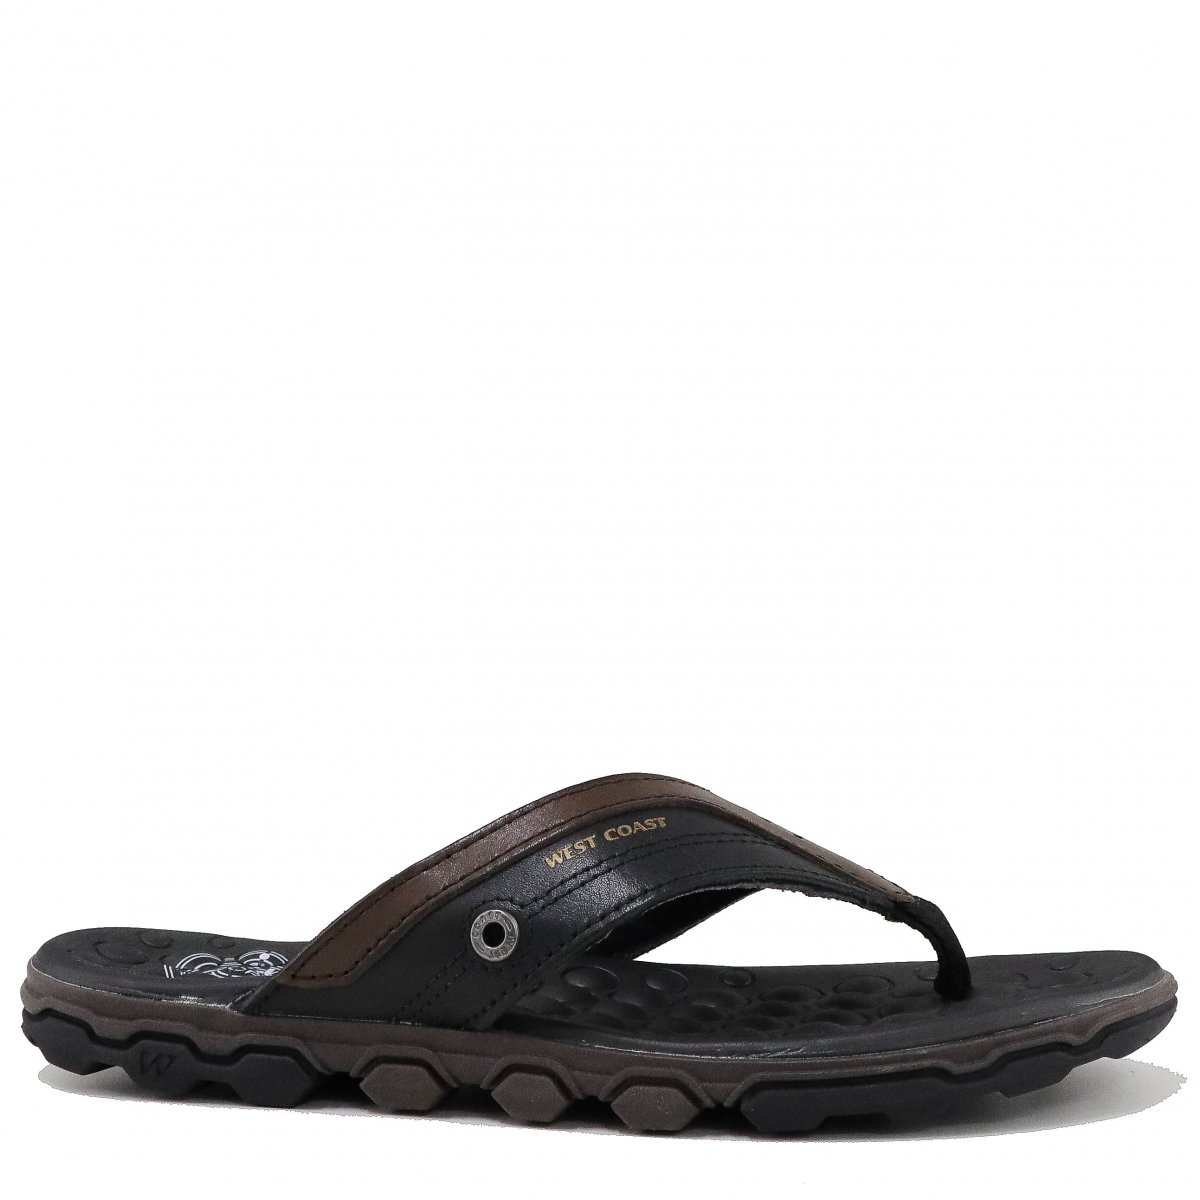 Chinelo West Coast Casual Preto